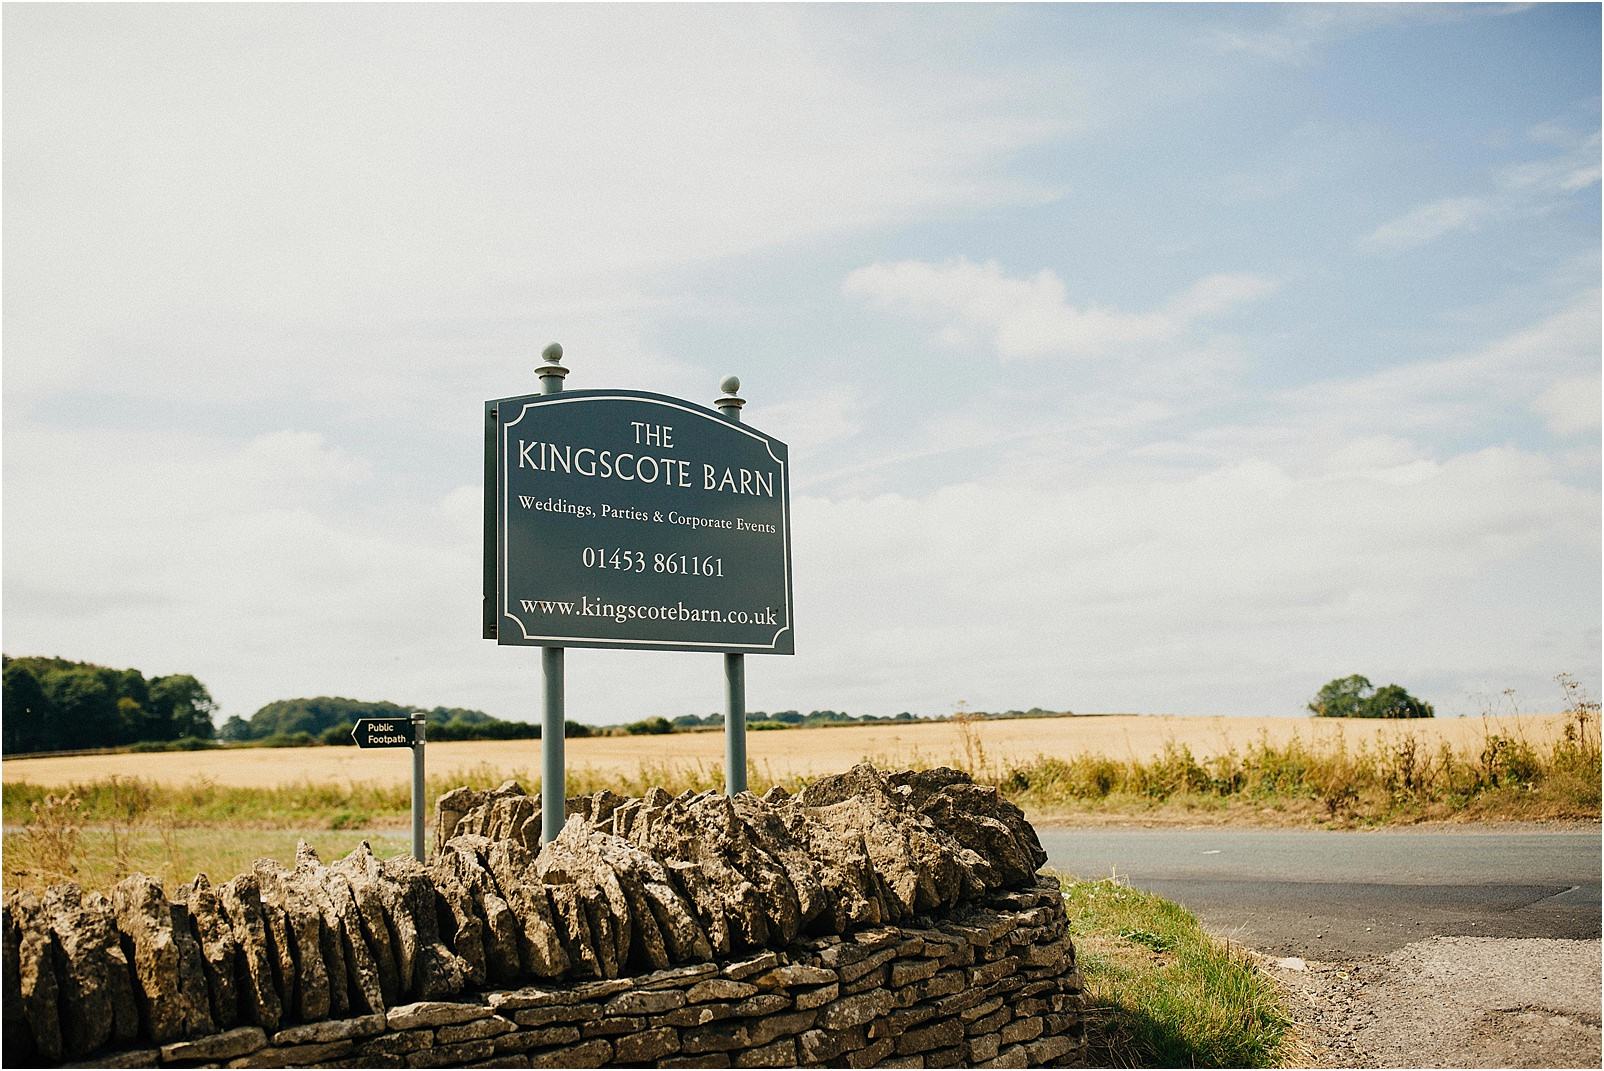 Kingscote Barn sign at the road